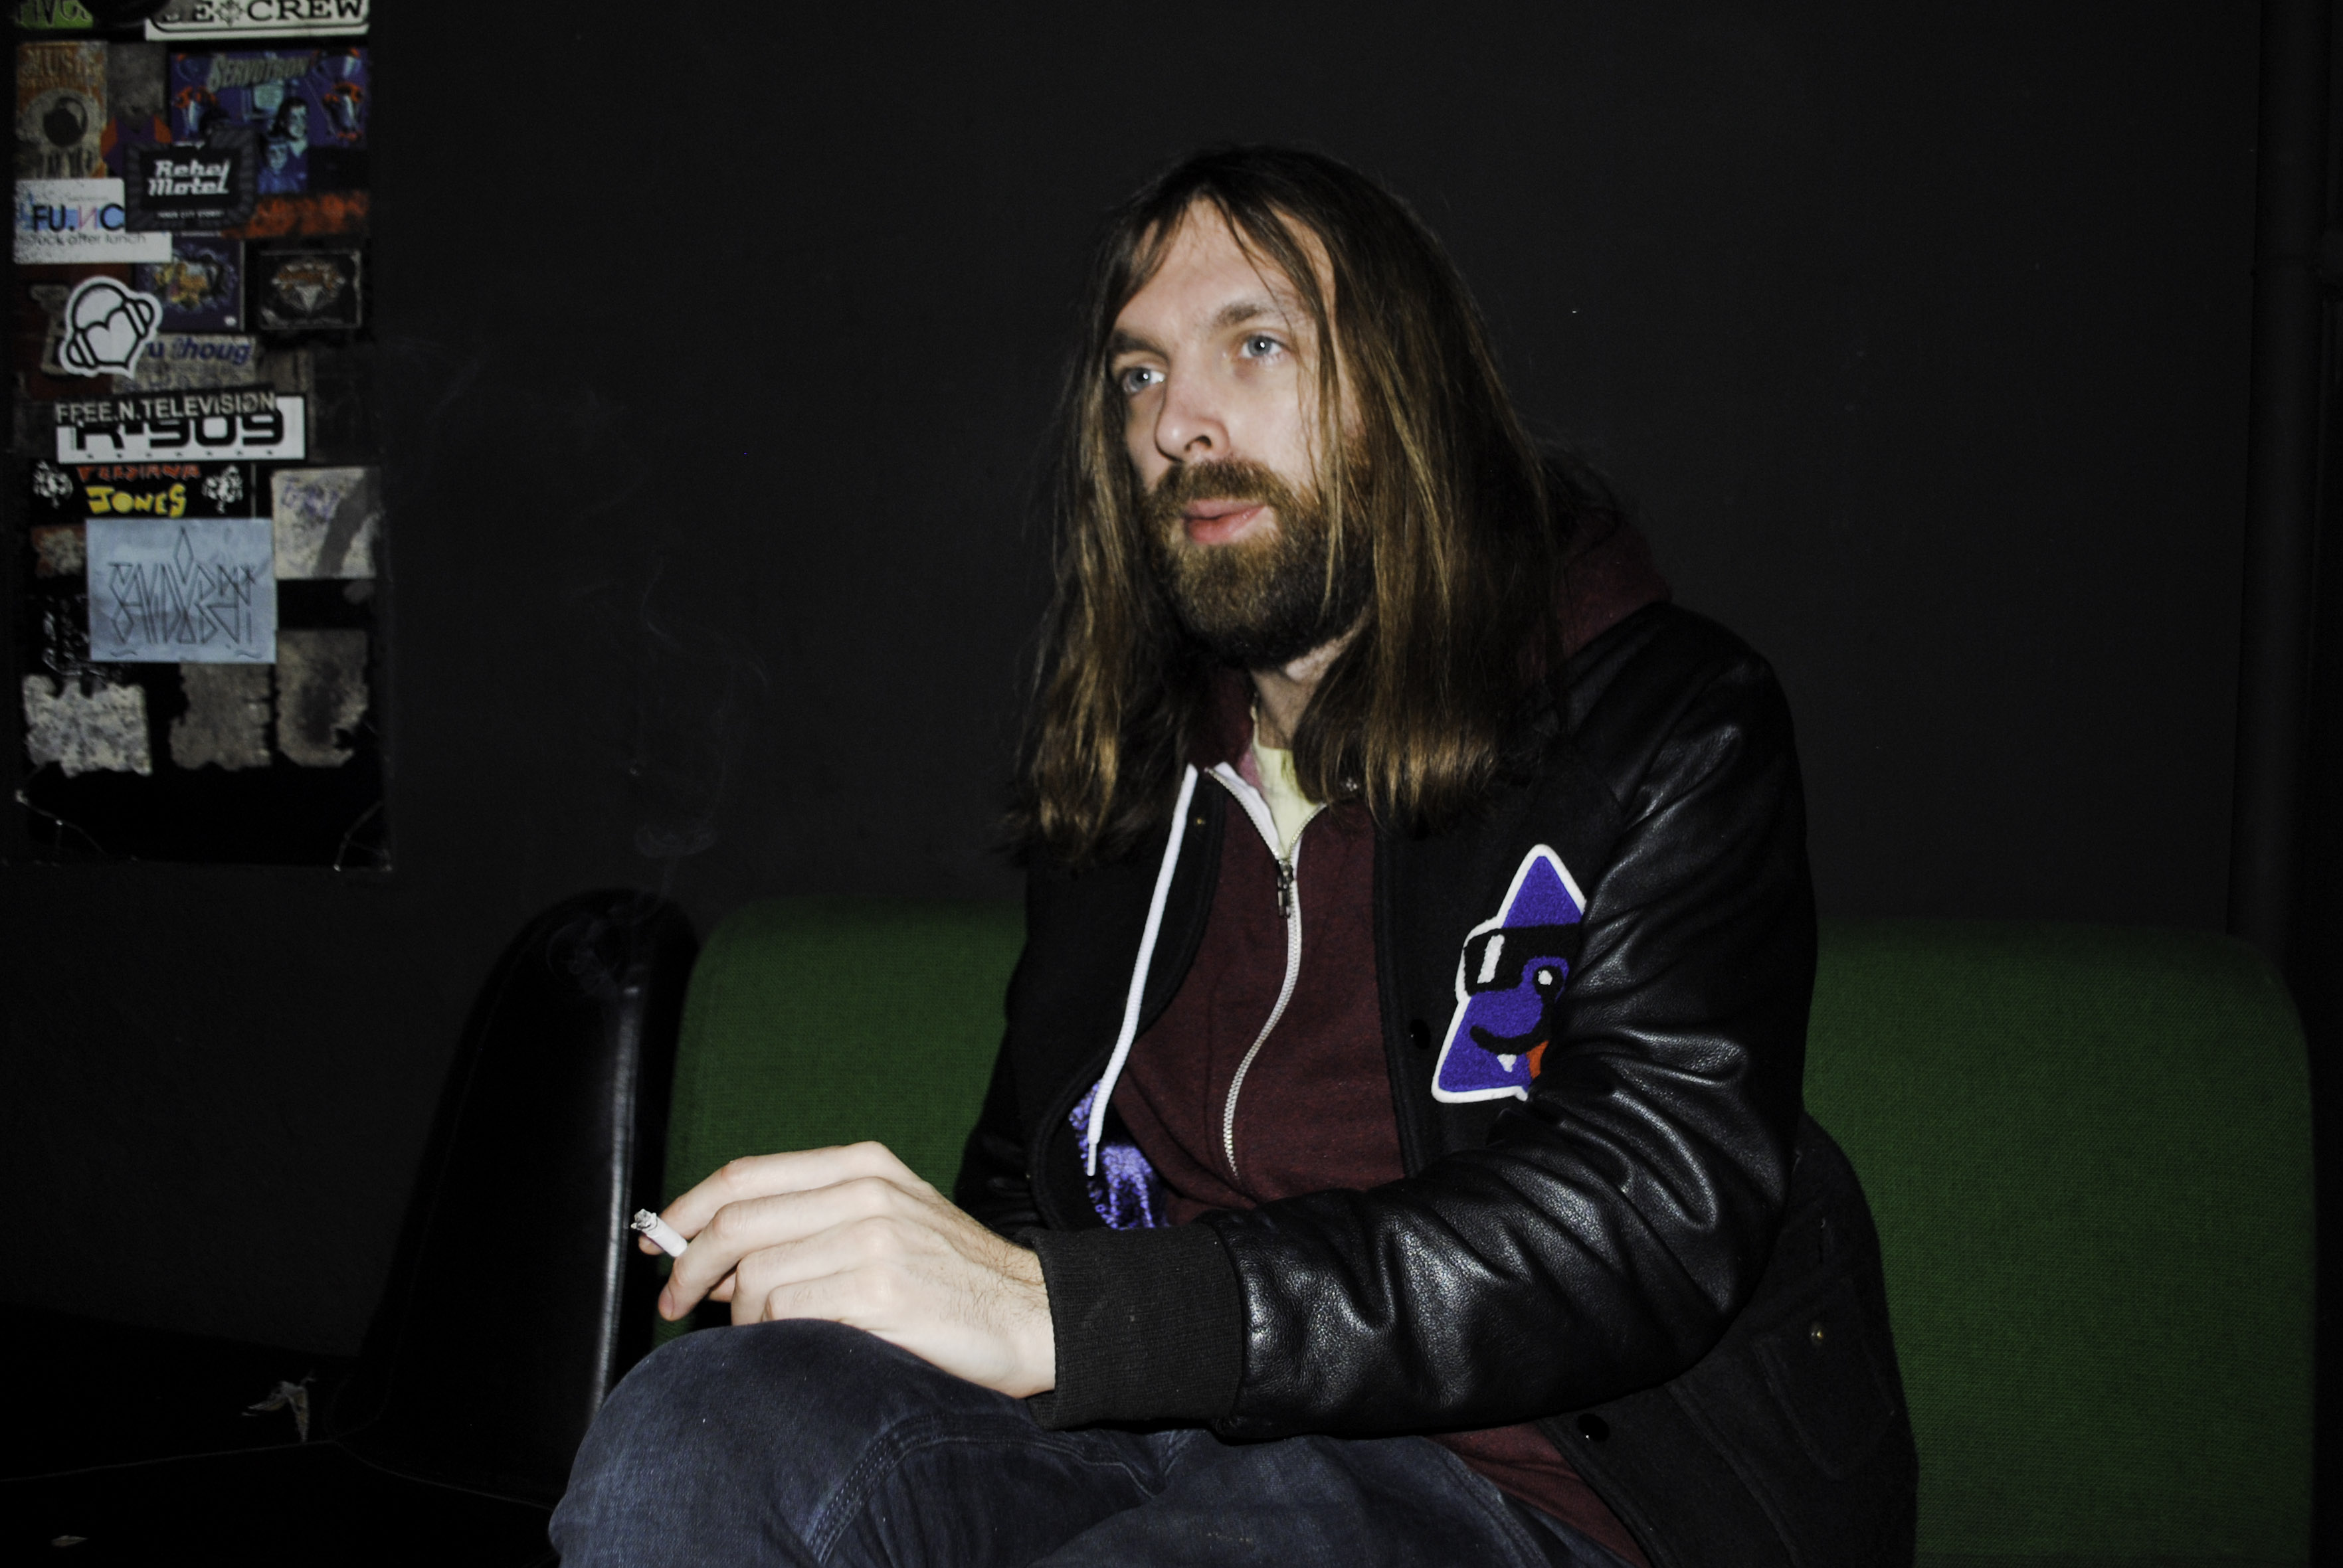 Breakbot_Tunnel_dlso